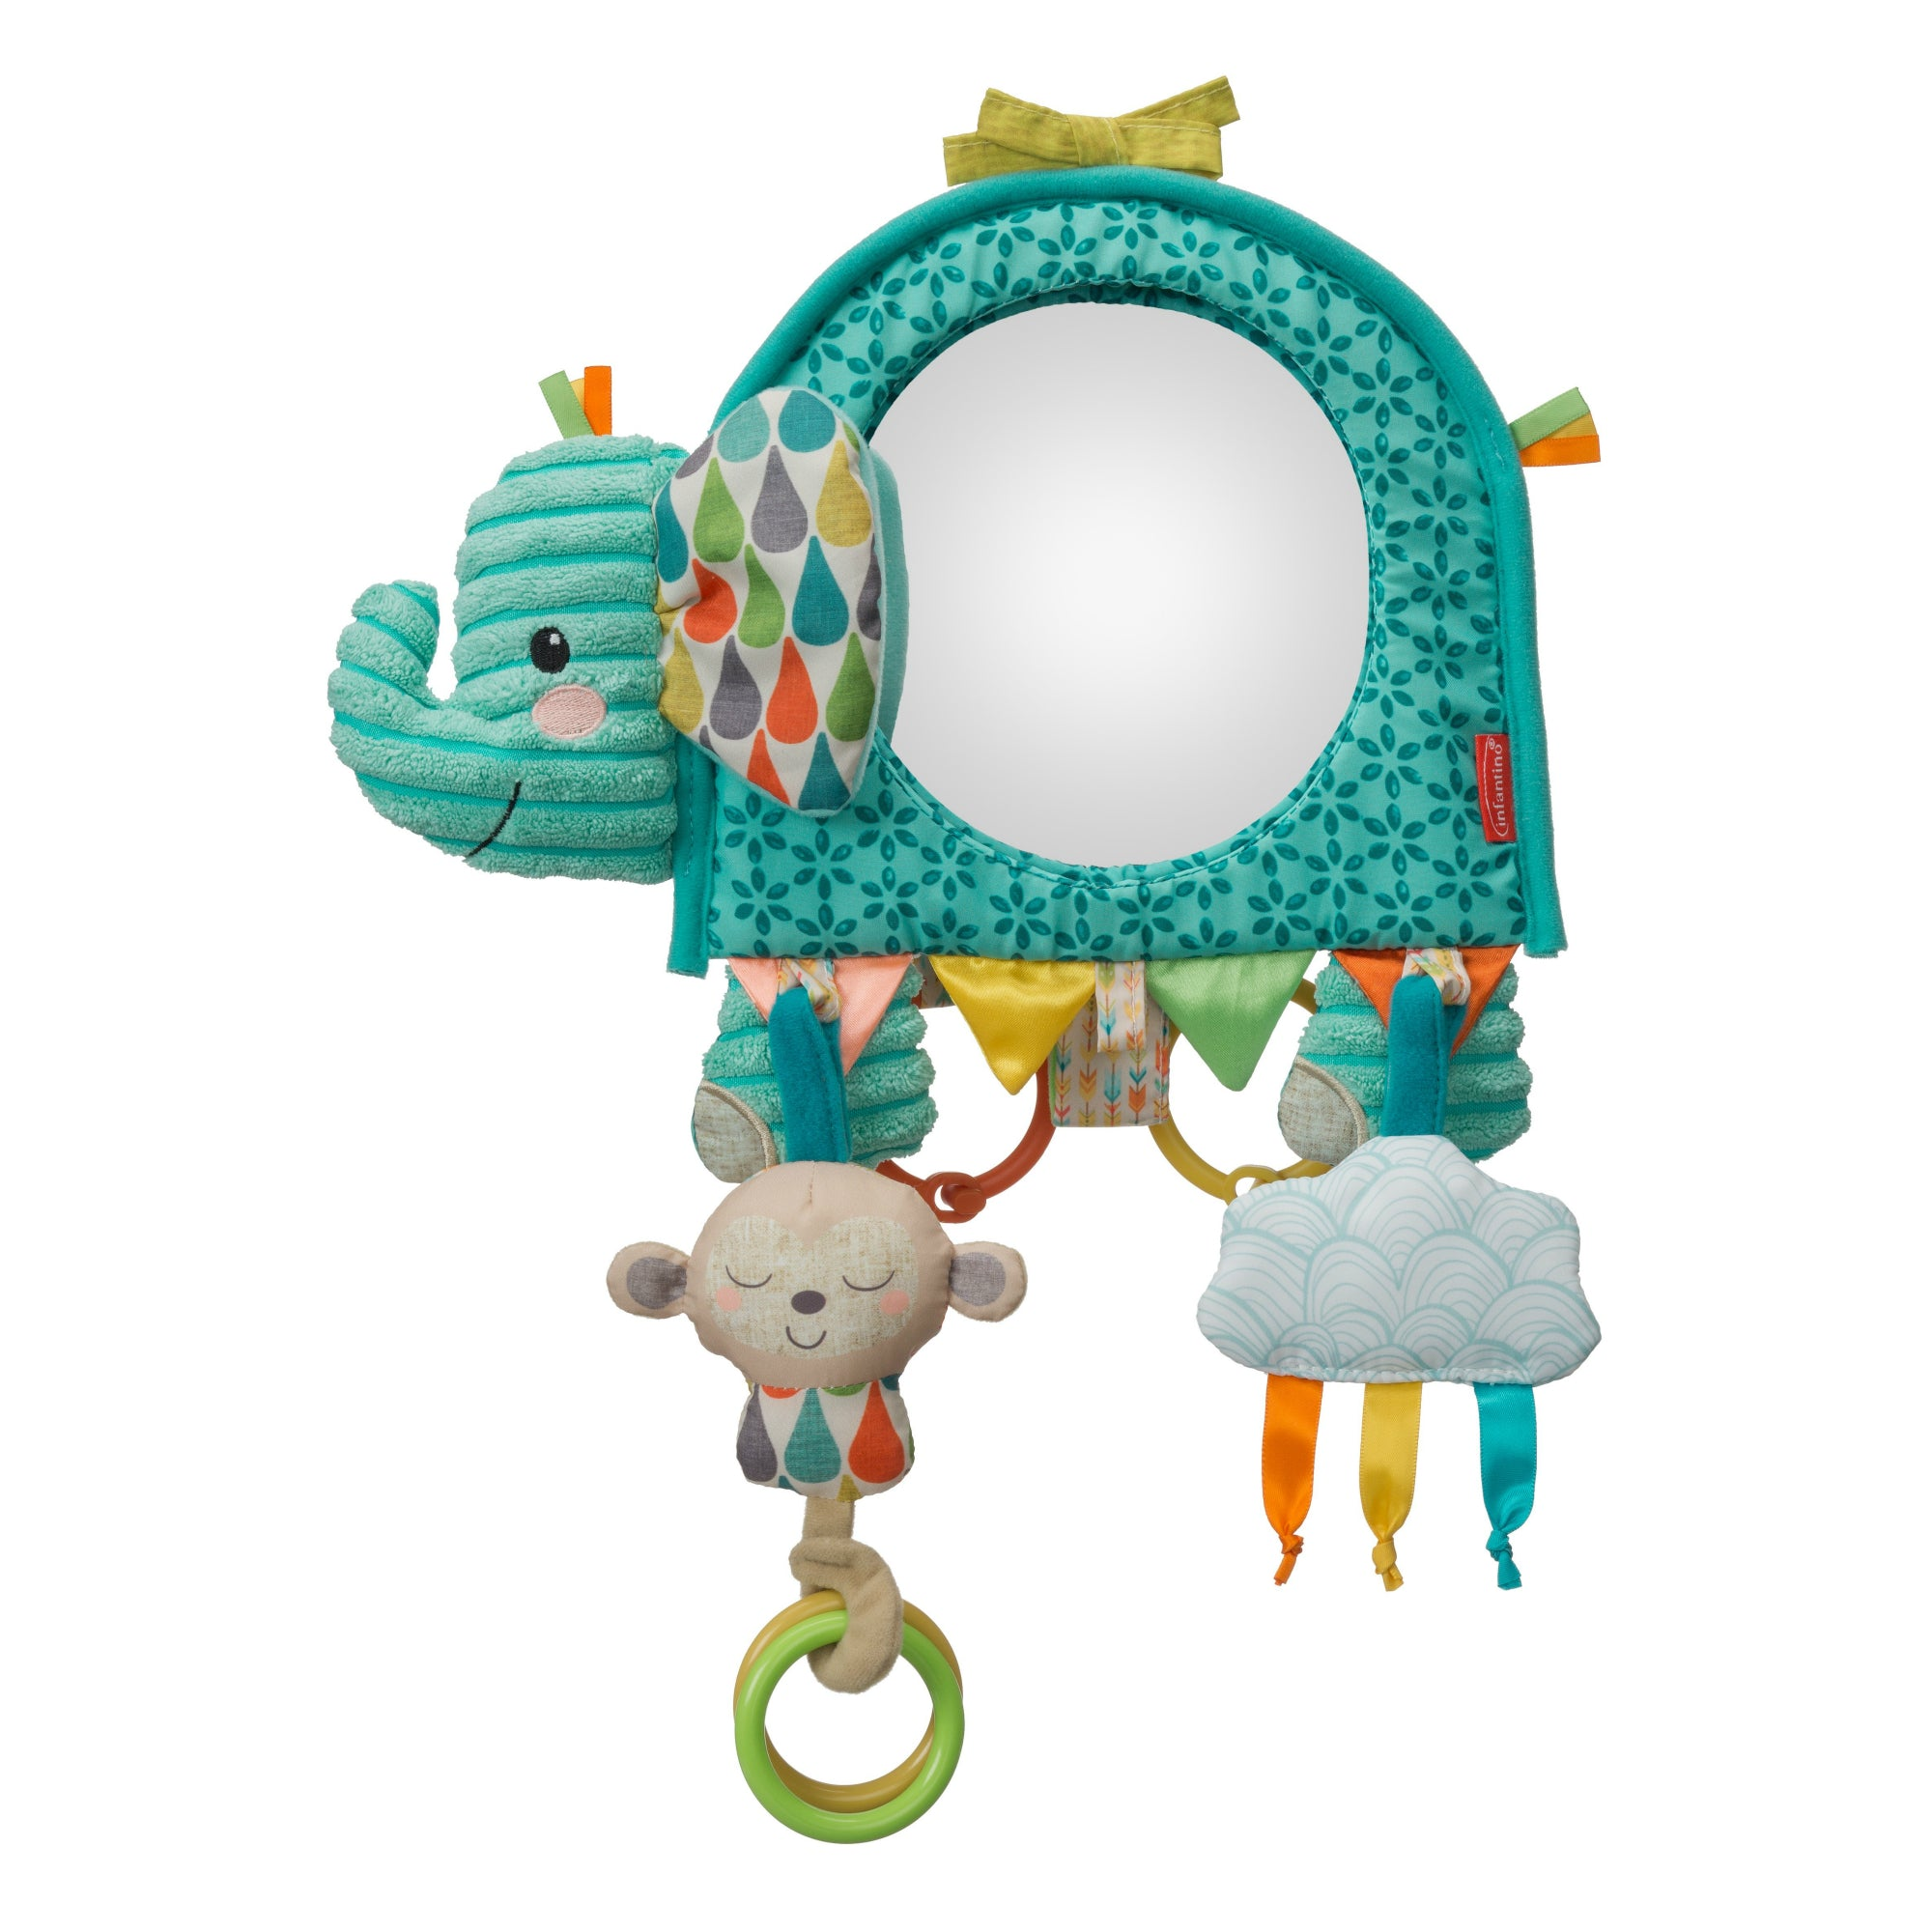 NUOBESTY Tummy Time Floor Mirror Play Activity Mirror Cartoon Elephant Shape Mirror Toy with Rattle Bell Toy for Baby Kids Toddler Infants